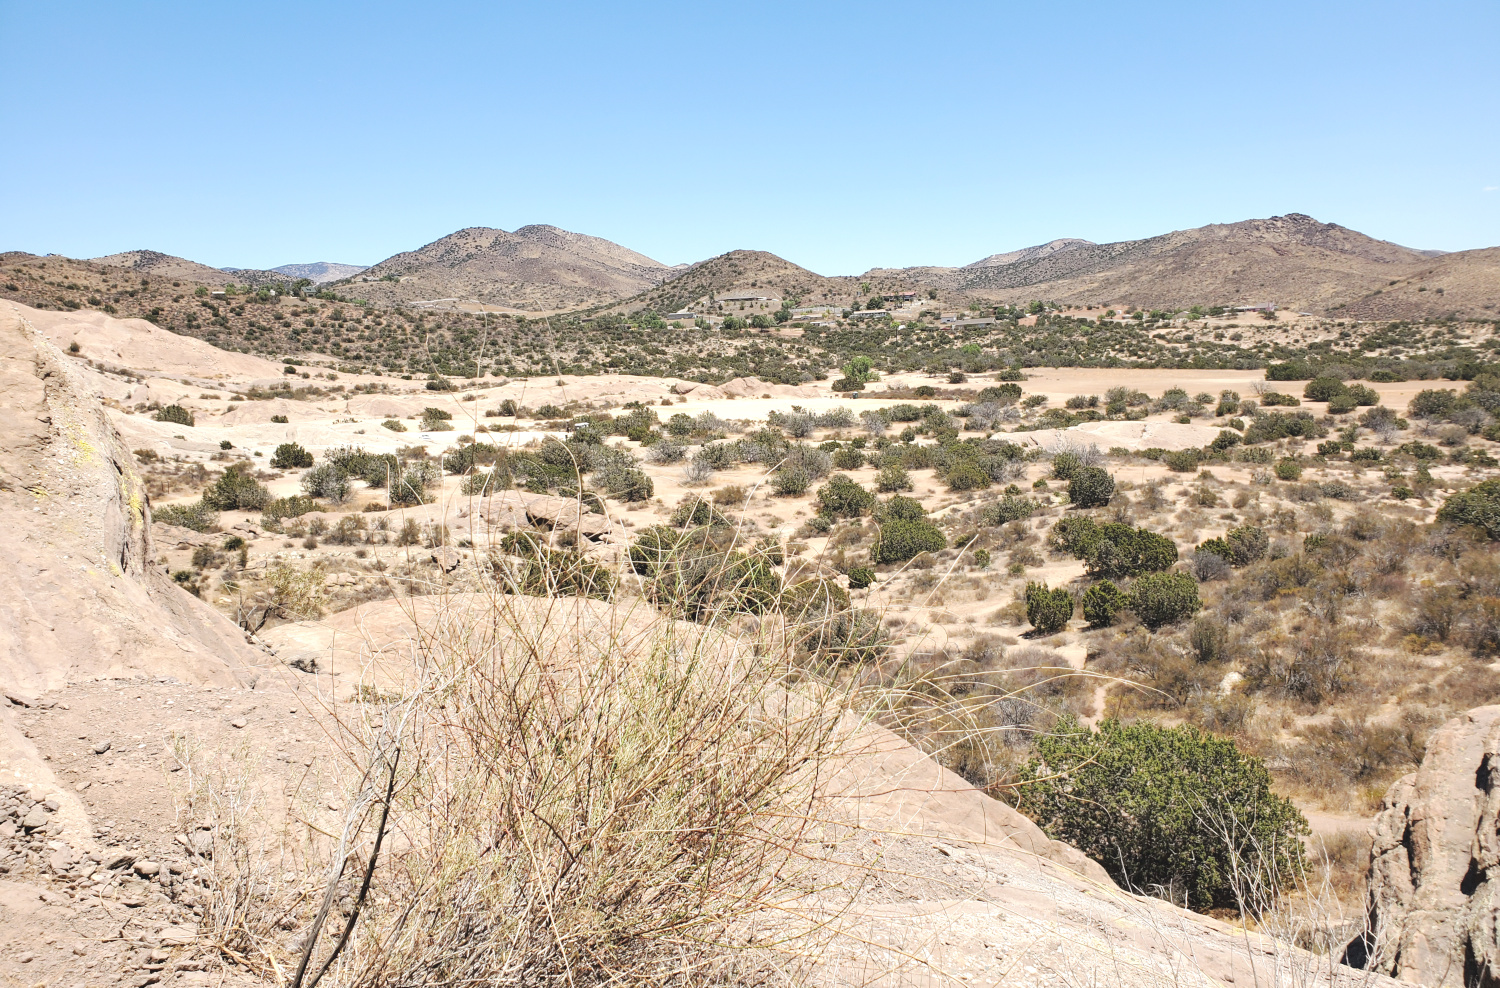 The wide expanse of desert, with no easy shade for the trip